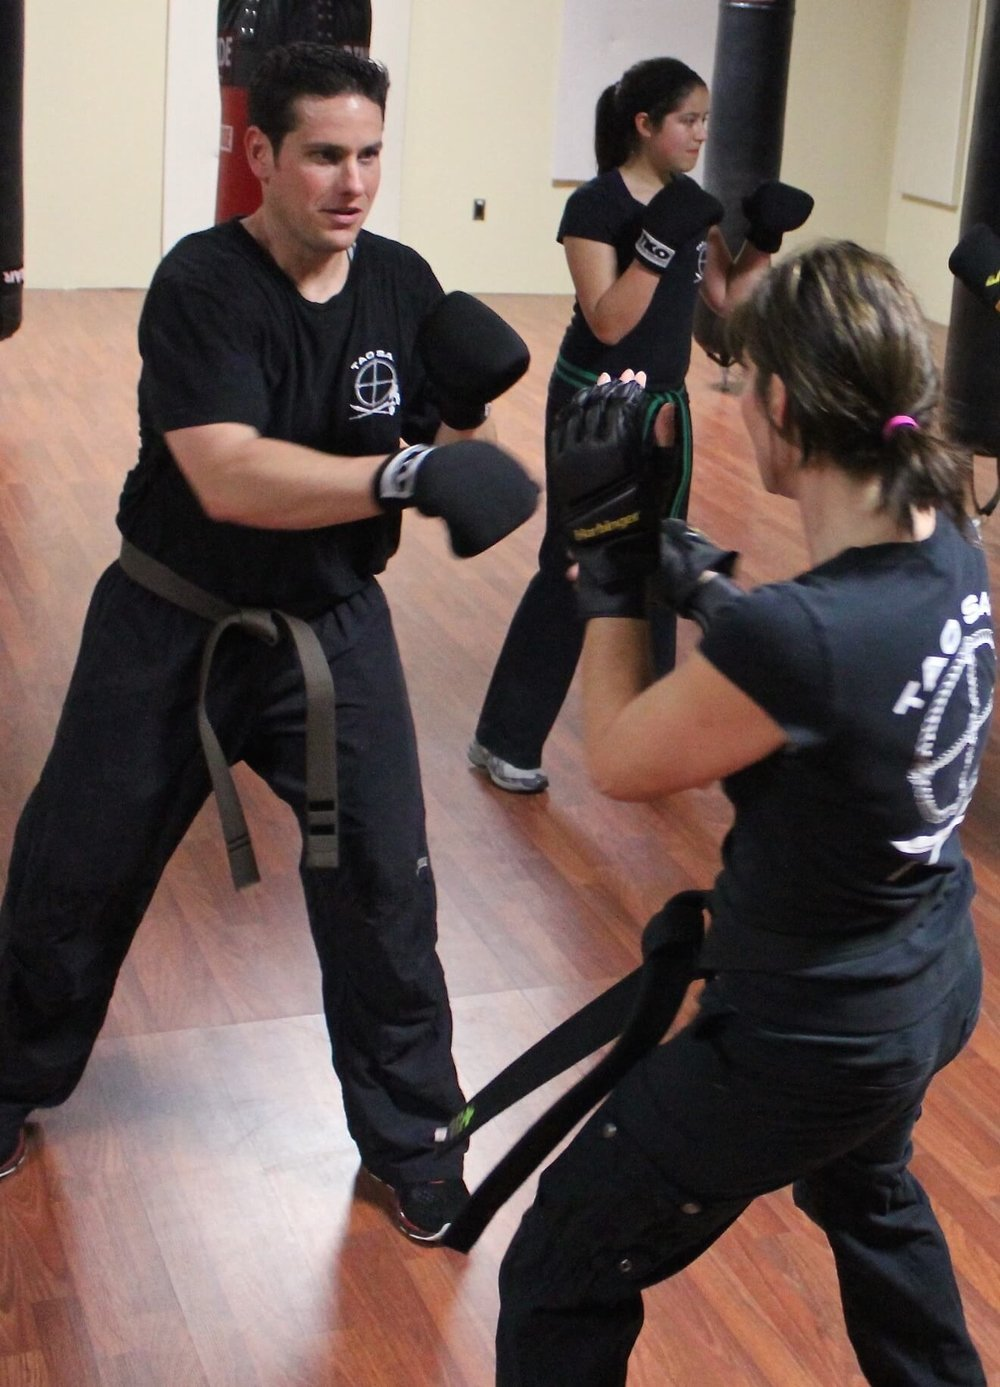 Martial Arts and Self-Defense for men, women, teens and children.